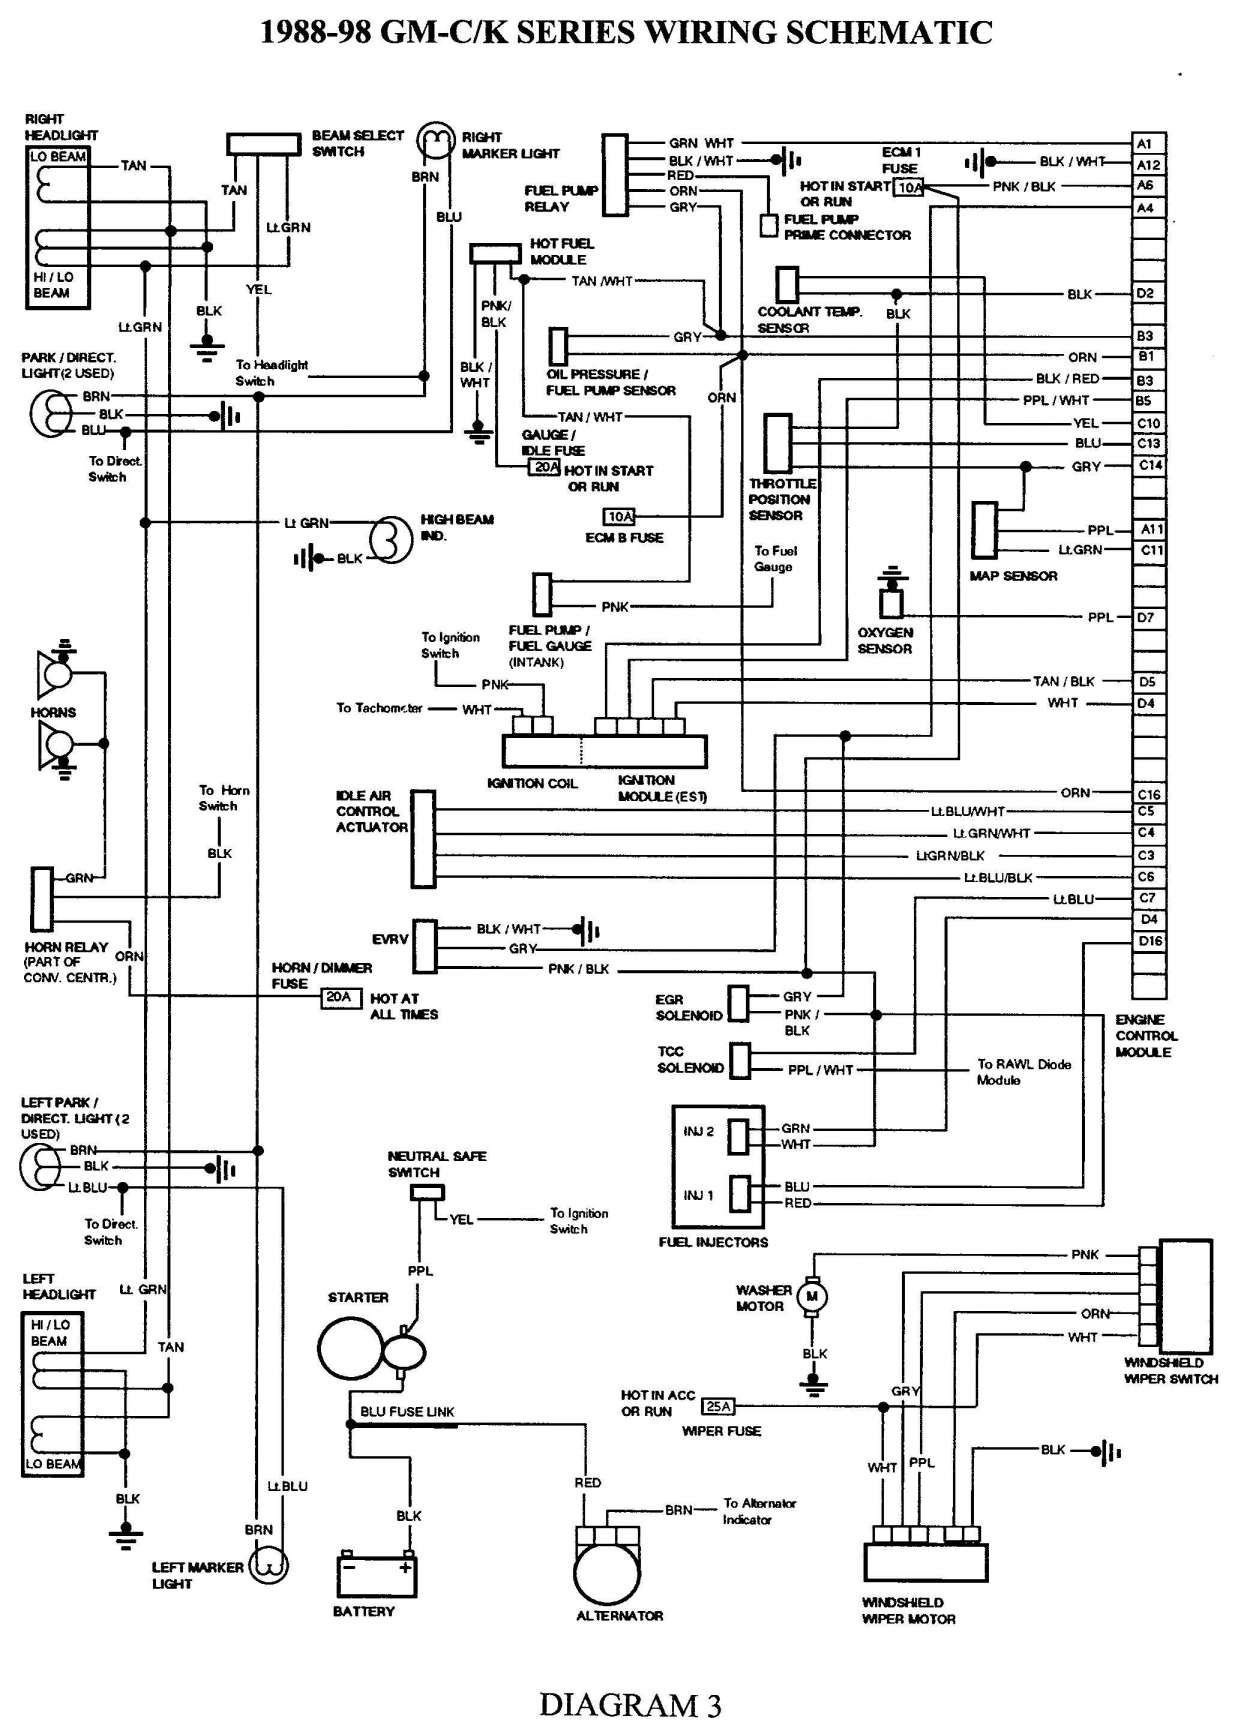 1989 chevy pickup wiring diagram 10 1989 chevy truck wiring diagram truck diagram in 2020  with  10 1989 chevy truck wiring diagram